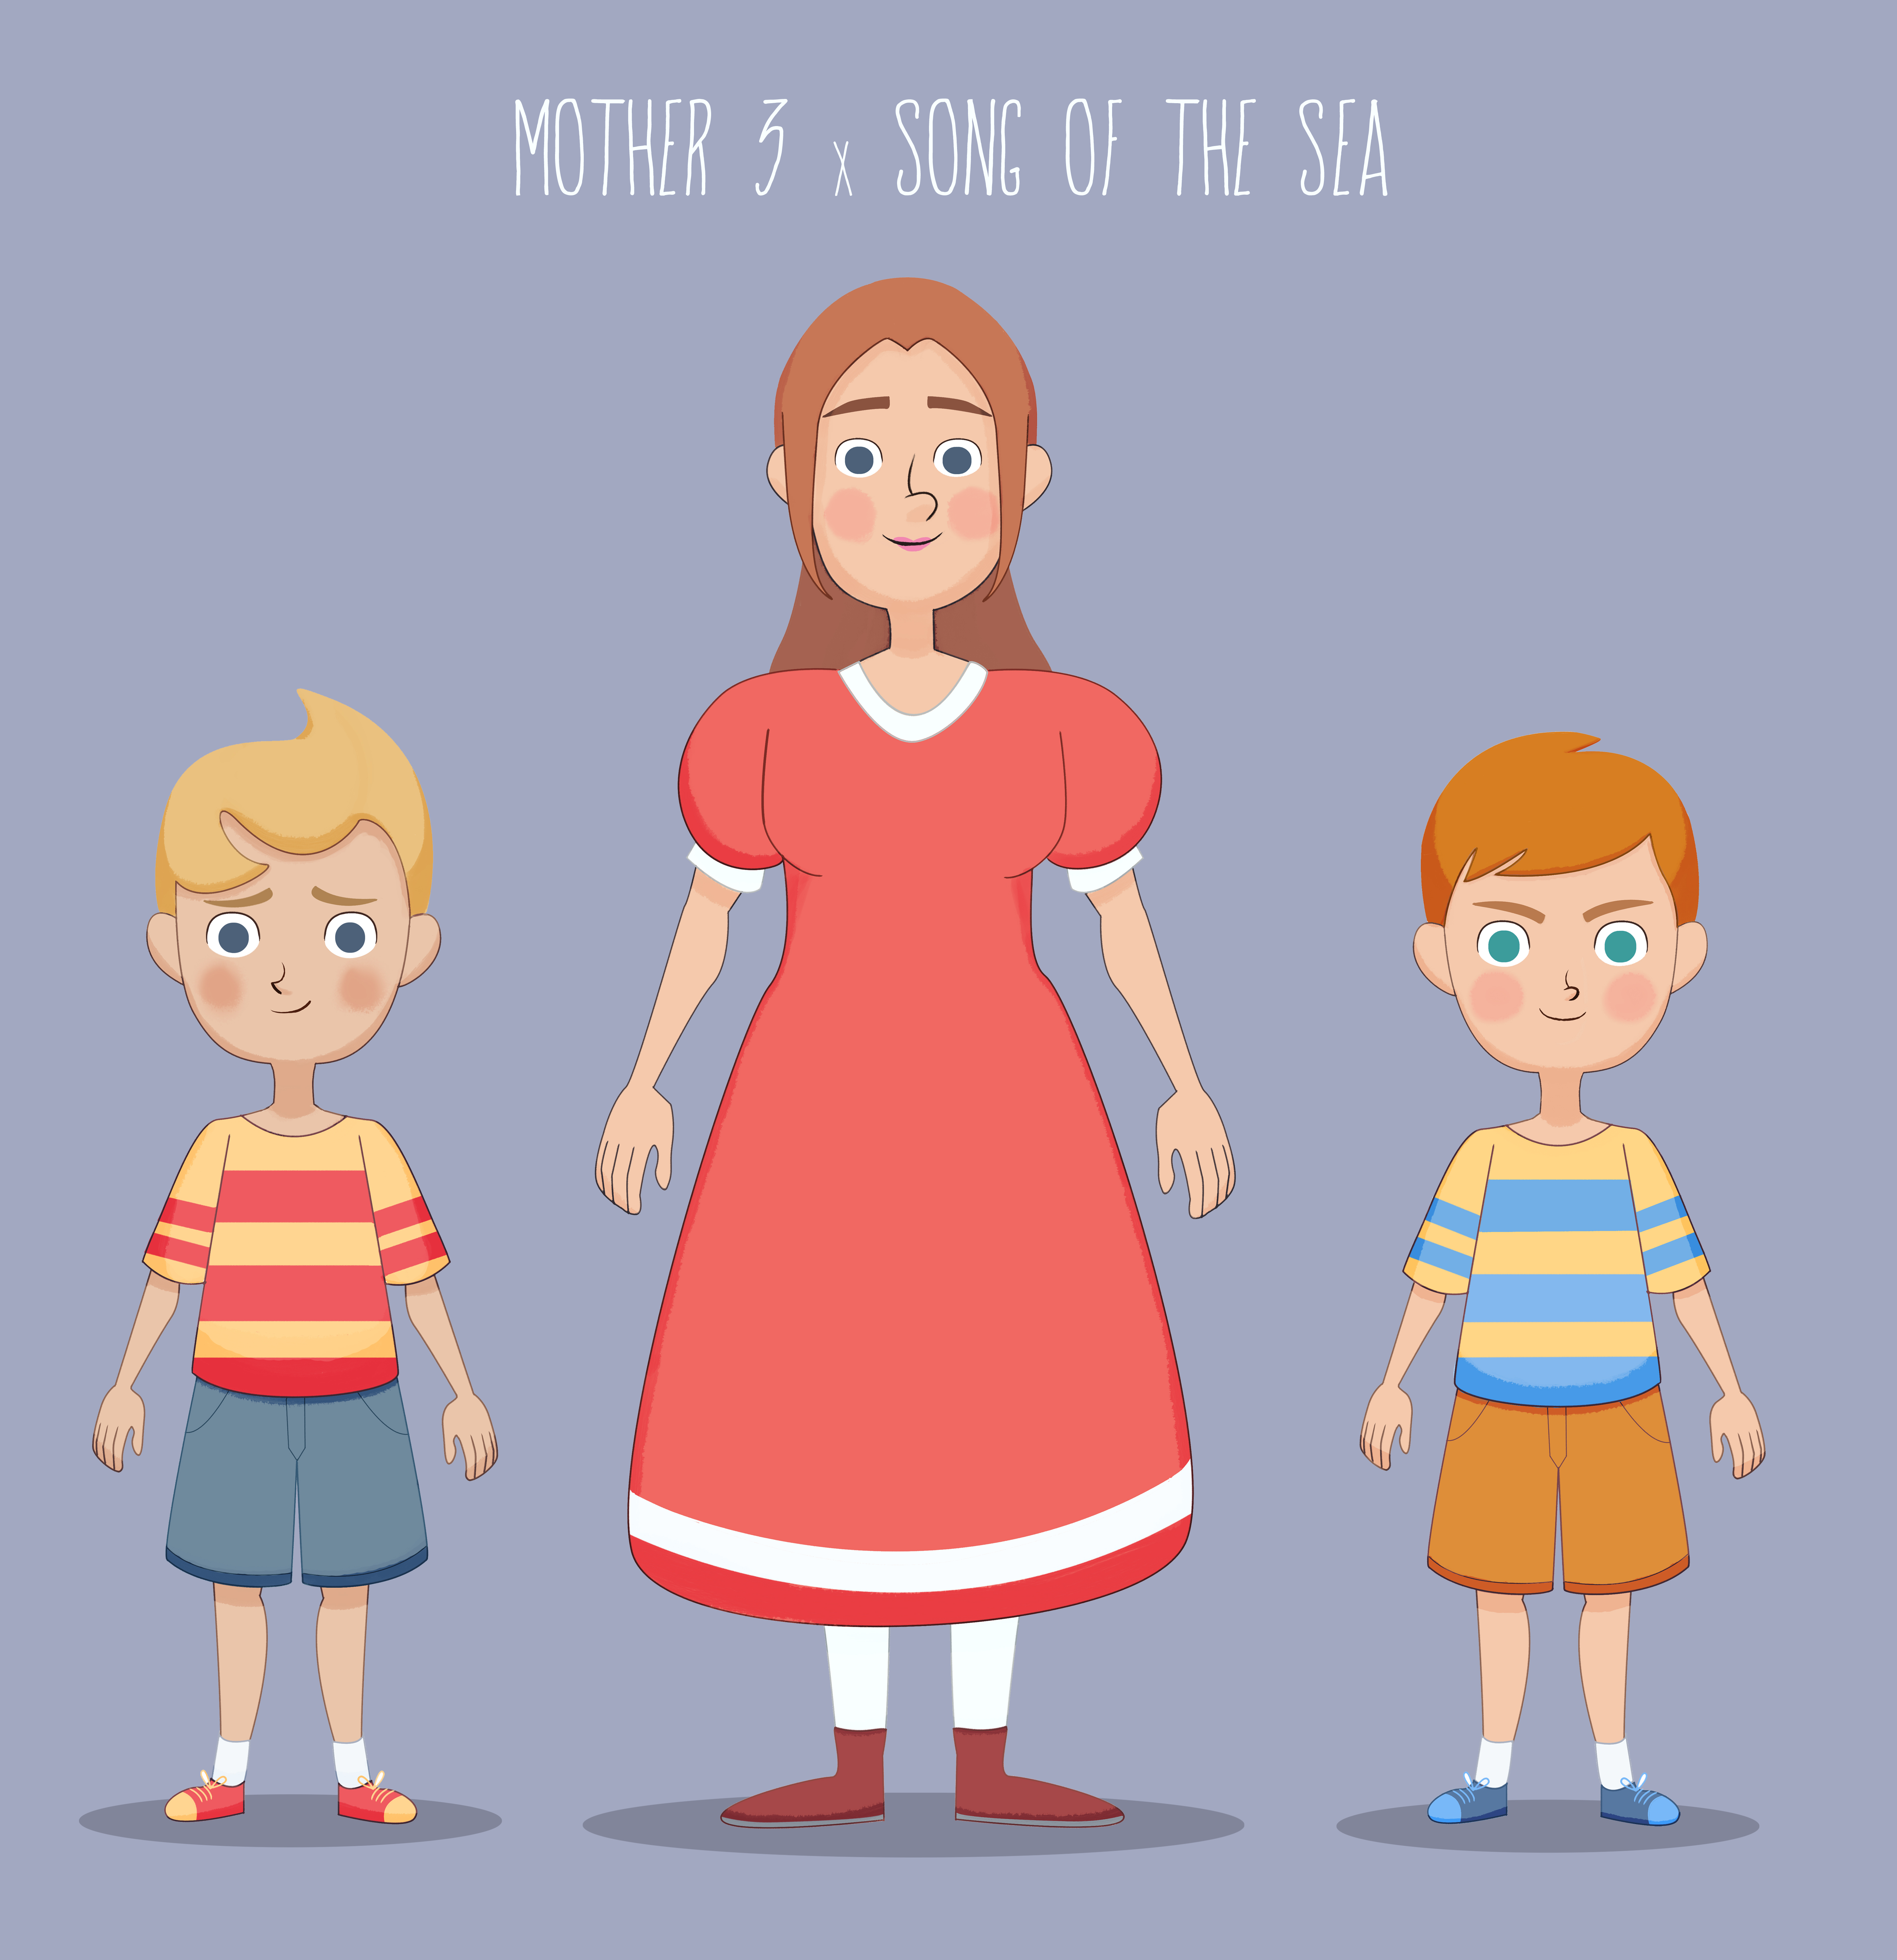 Mother 3 x Song of the Sea by white-yoshi on DeviantArt